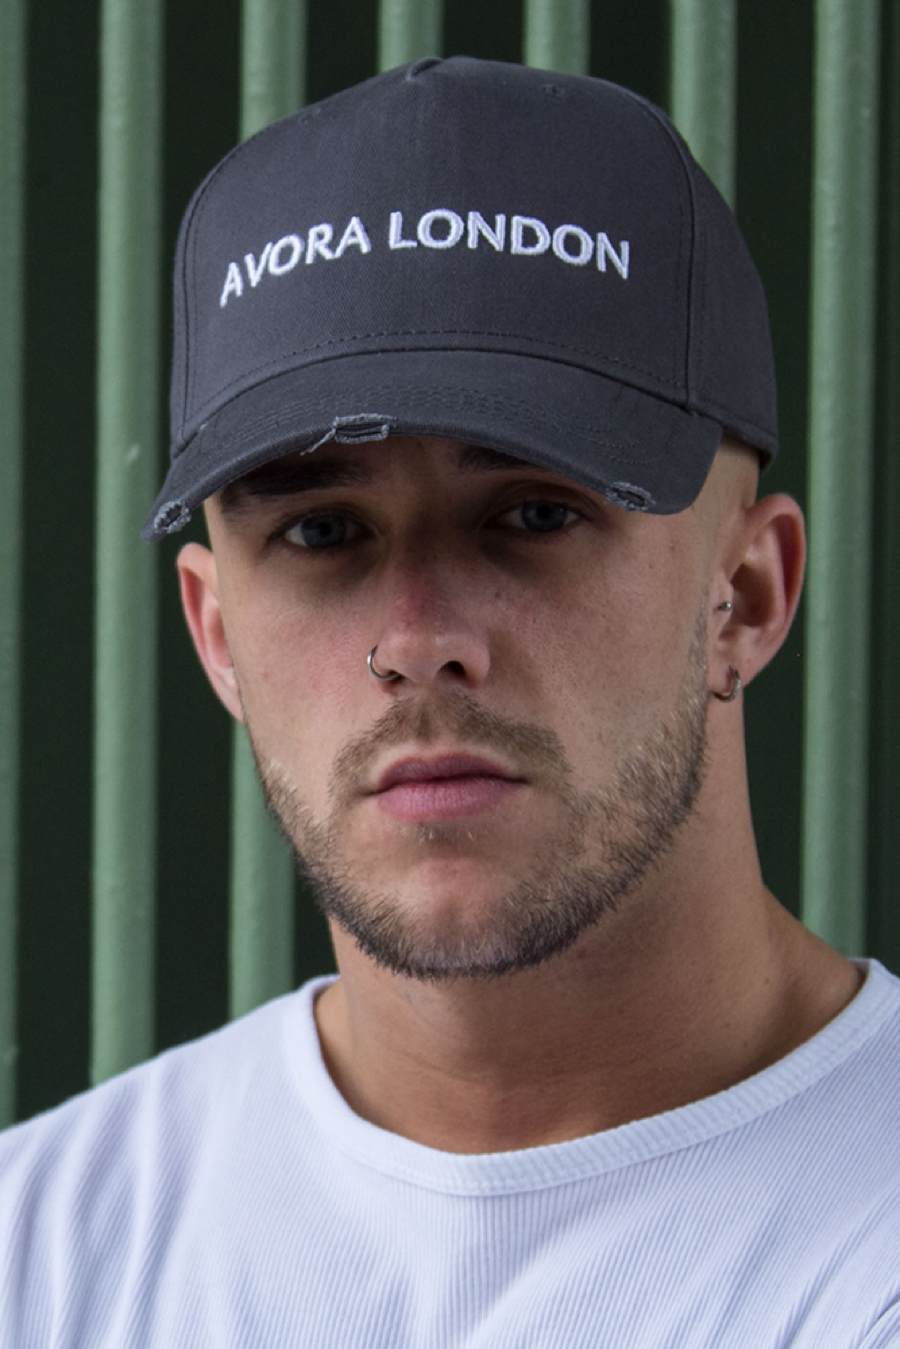 Avora London Distressed Peak Trucker Cap - Charcoal/White